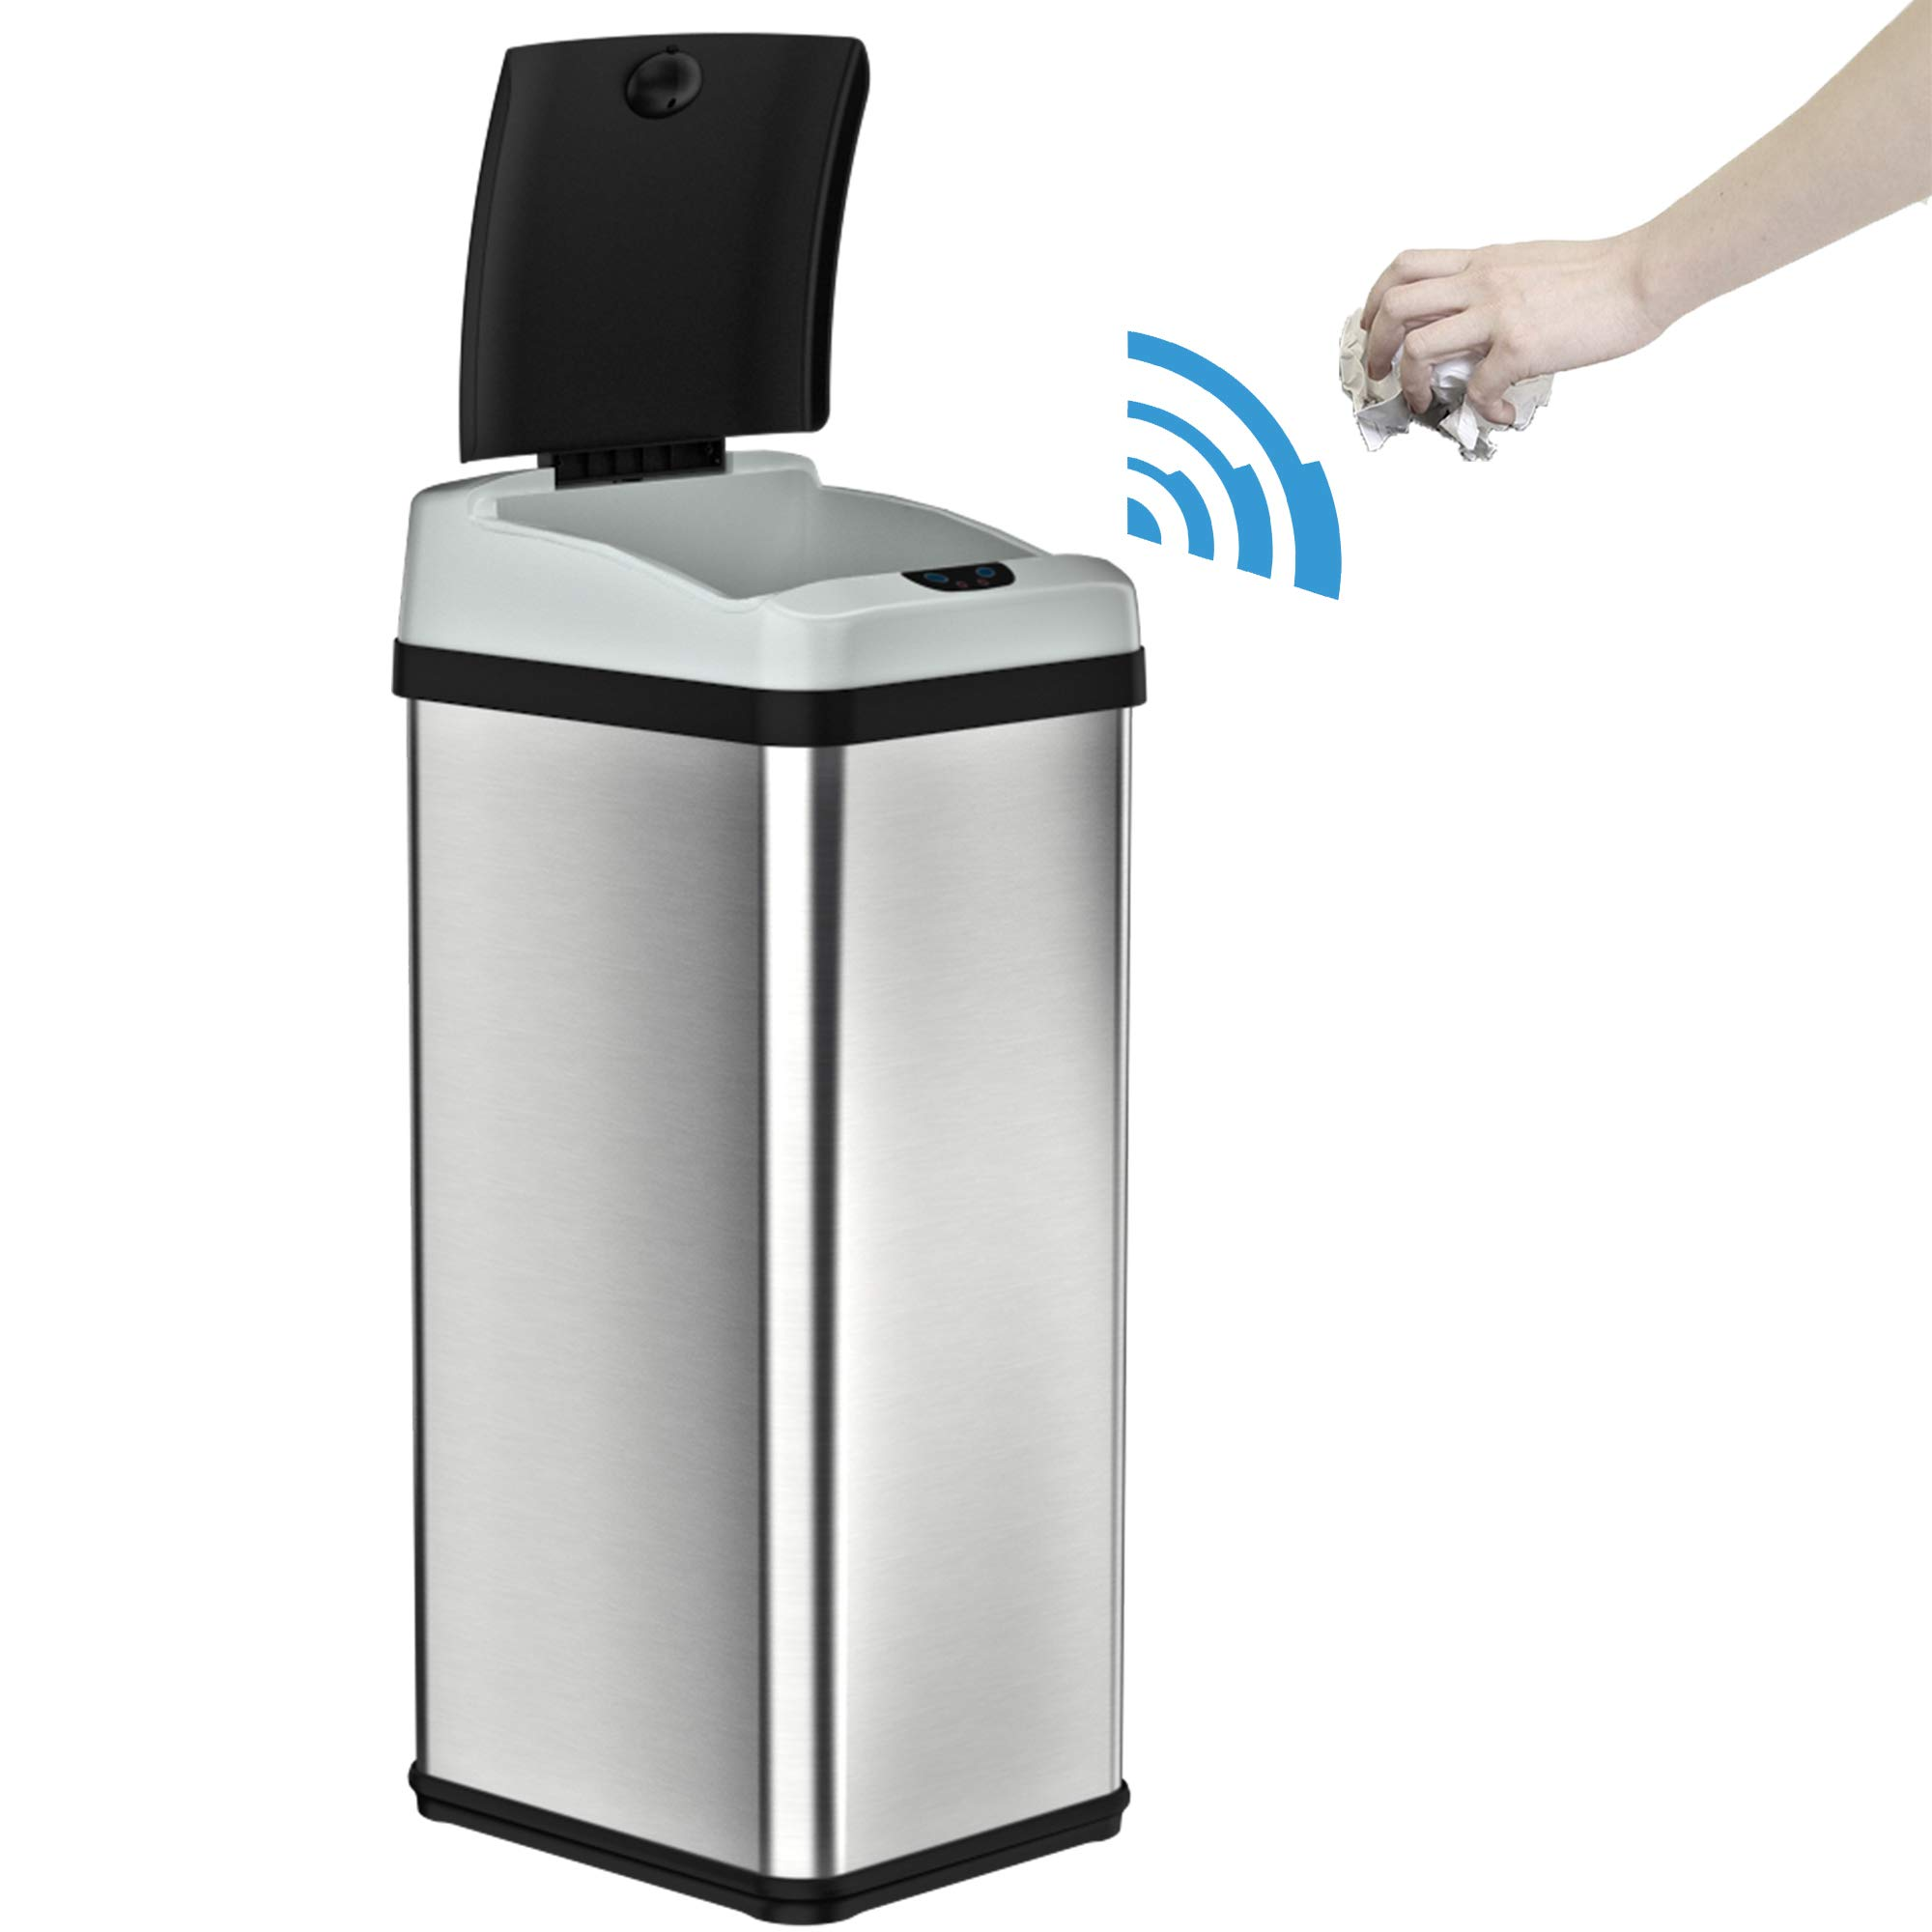 iTouchless RX 13 Gallon Stainless Steel Touchless Trash Can with AC Adapter Platinum Limited Edition, Odor Control System Kitchen Bin, by iTouchless (Image #2)